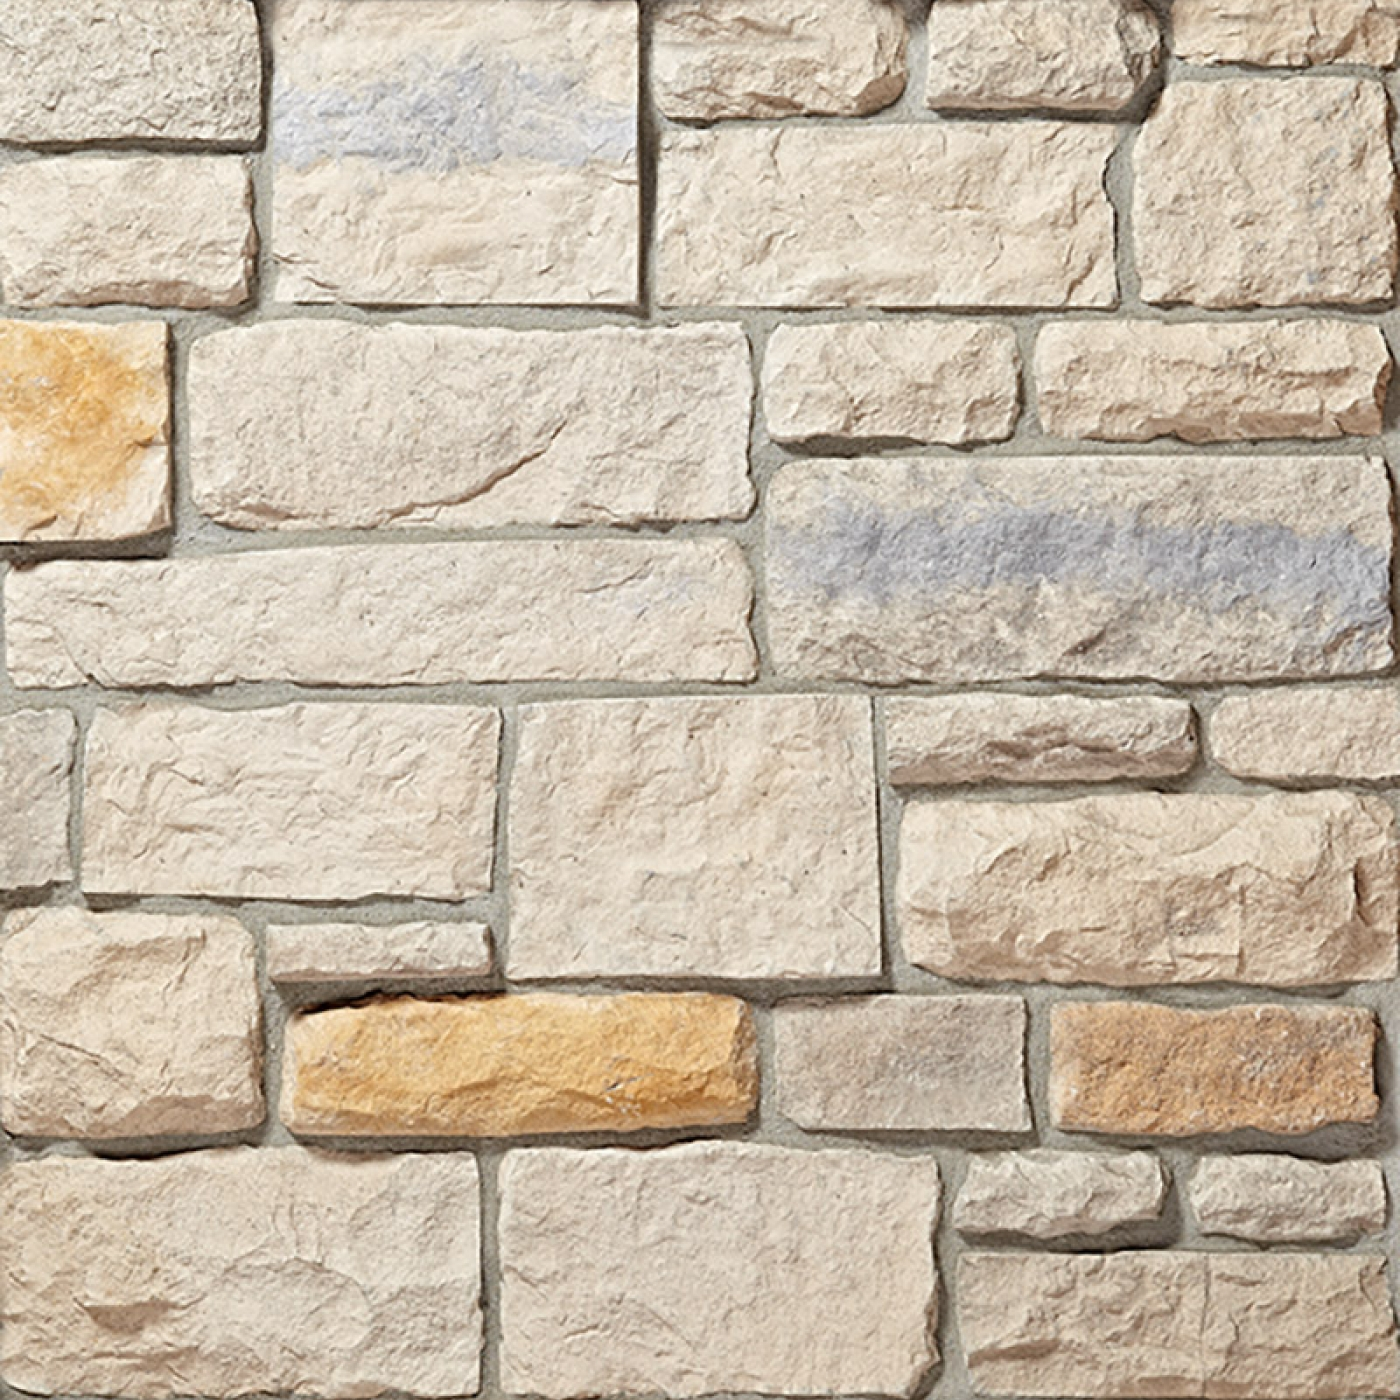 Ohio Blue Vein Cut Stone Stone Veneer from Environmental StoneWorks